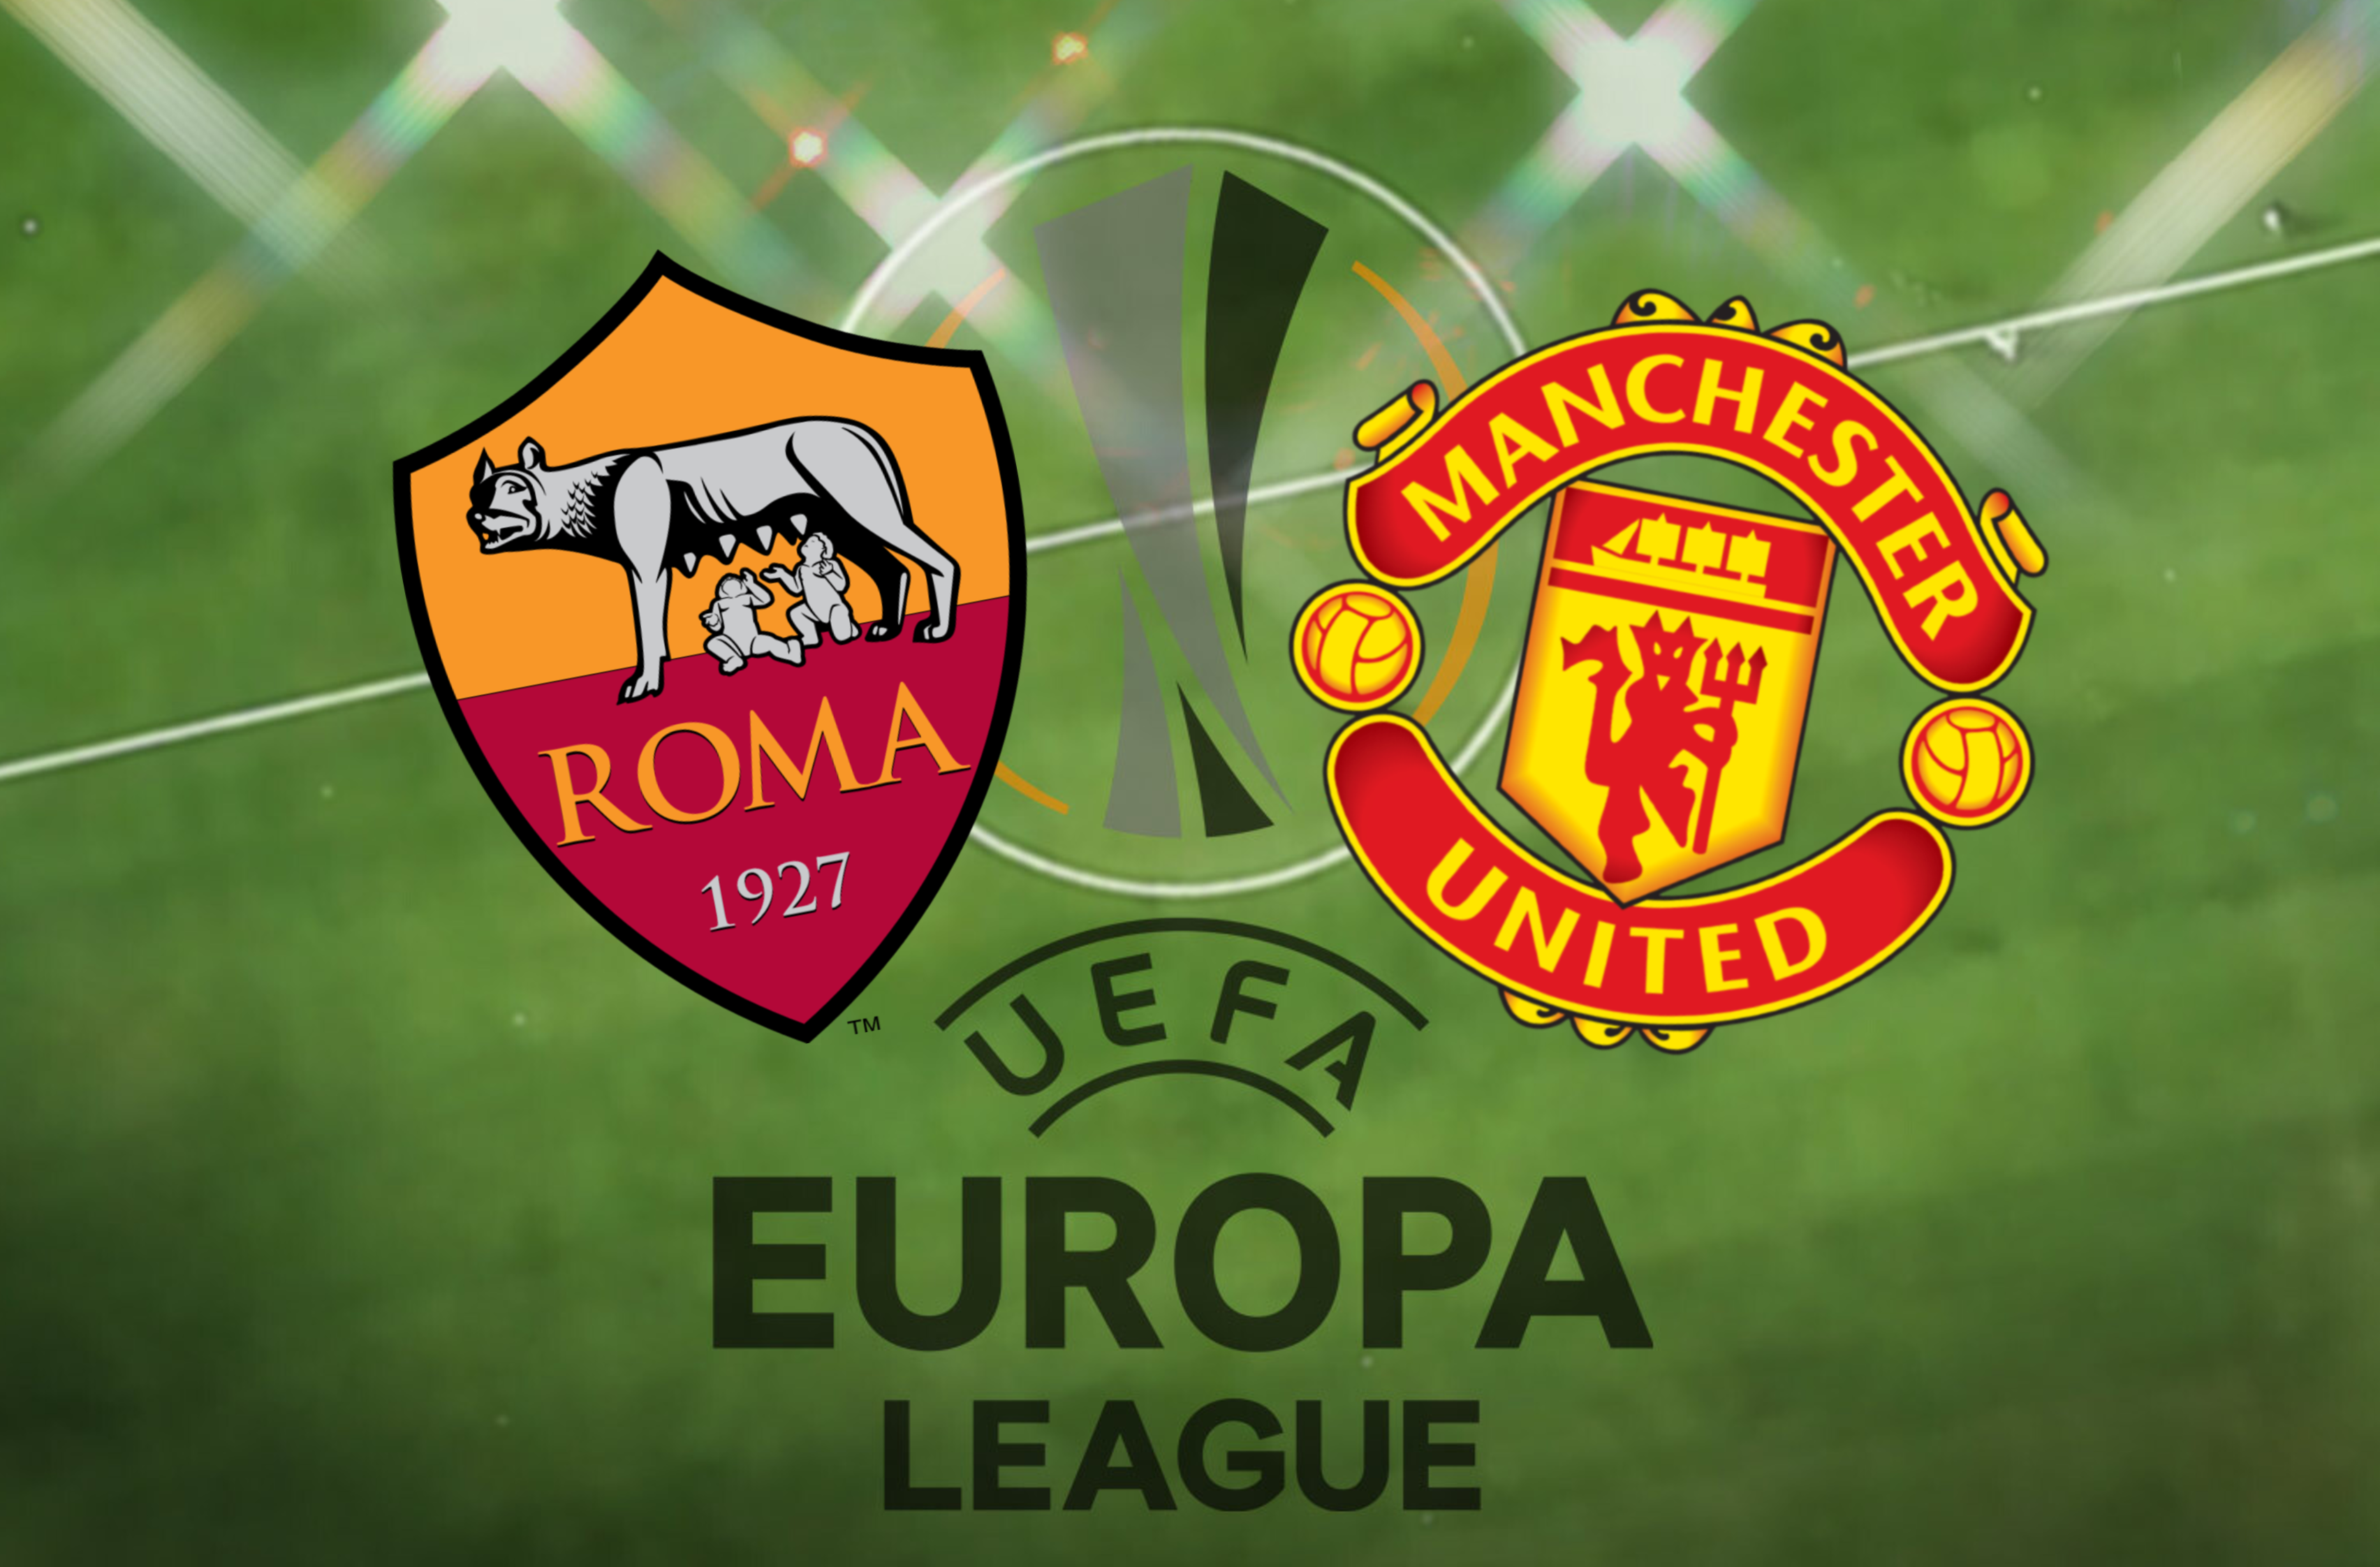 Man United vs Roma: Uefa Europa League prediction, TV channel, team news, lineups, live stream, h2h results